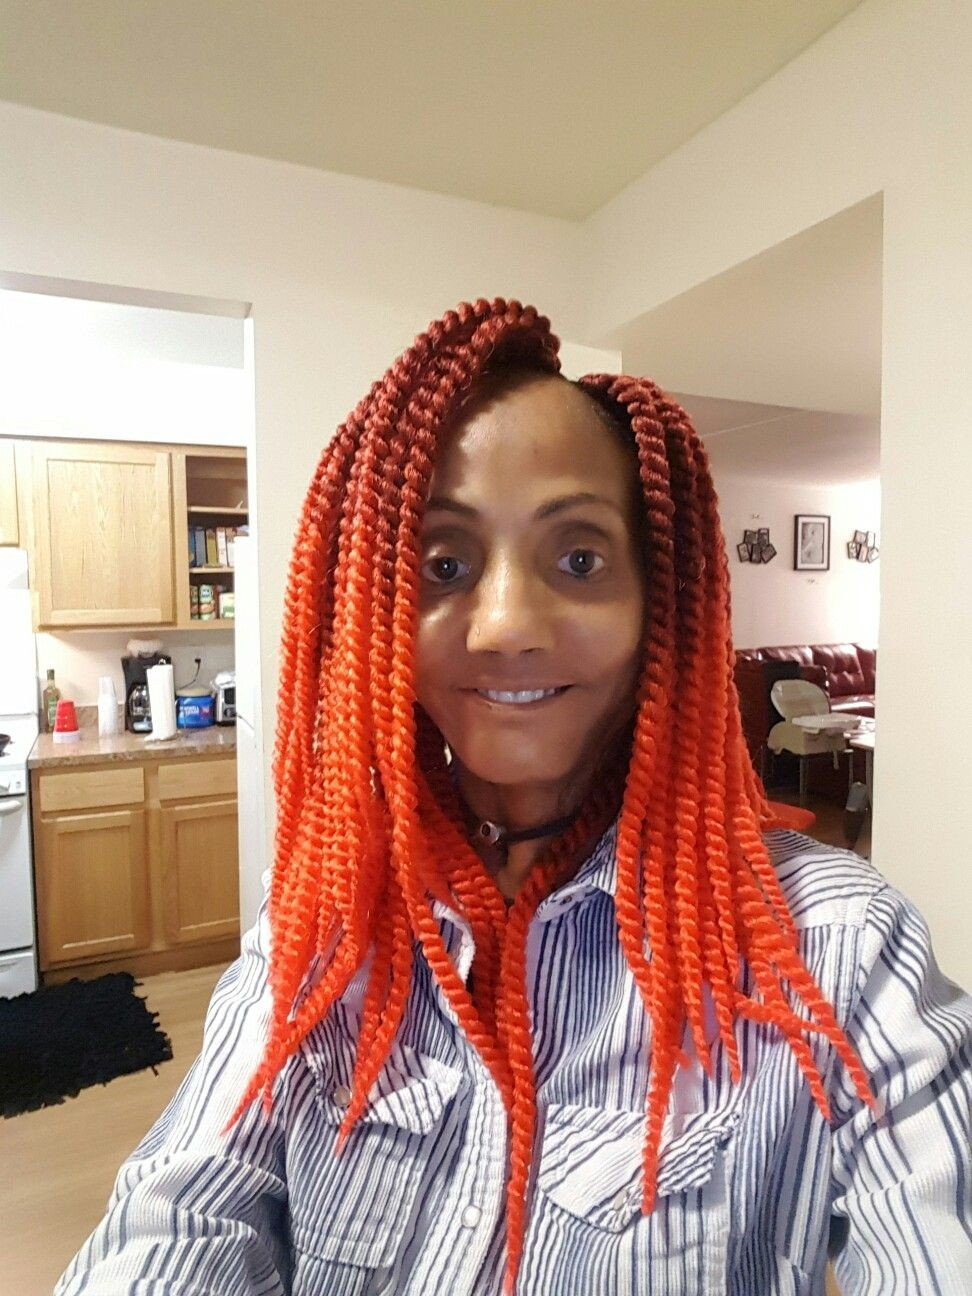 Crochet Braid Pattern to Make Various Projects Crochet Braid Pattern For Updo Hairstyles With Beautiful Bright Red